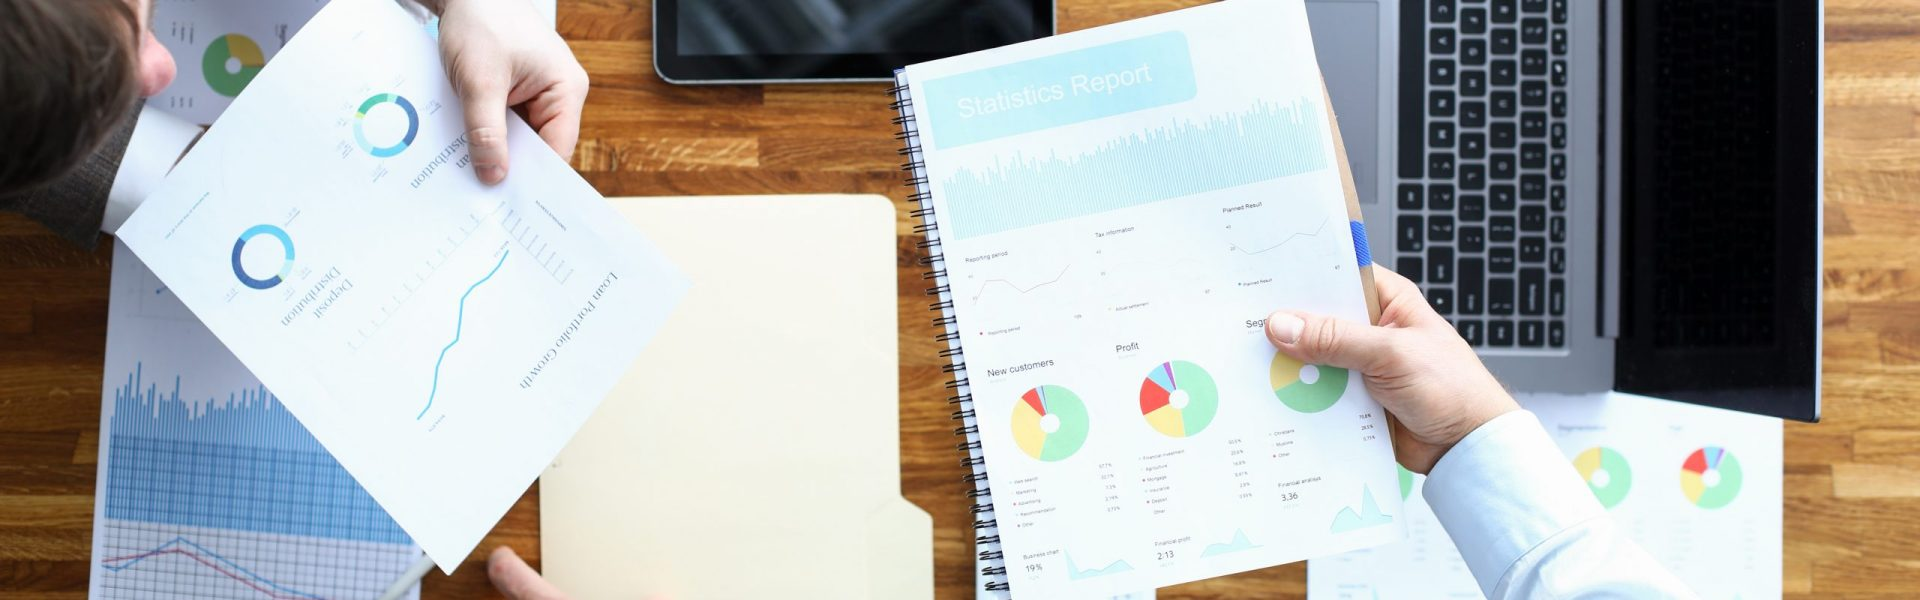 Men make statistical analysis contract, management. Business plan develops an enterprise development strategy. Thorough justification financial indicators. Identify specific areas company